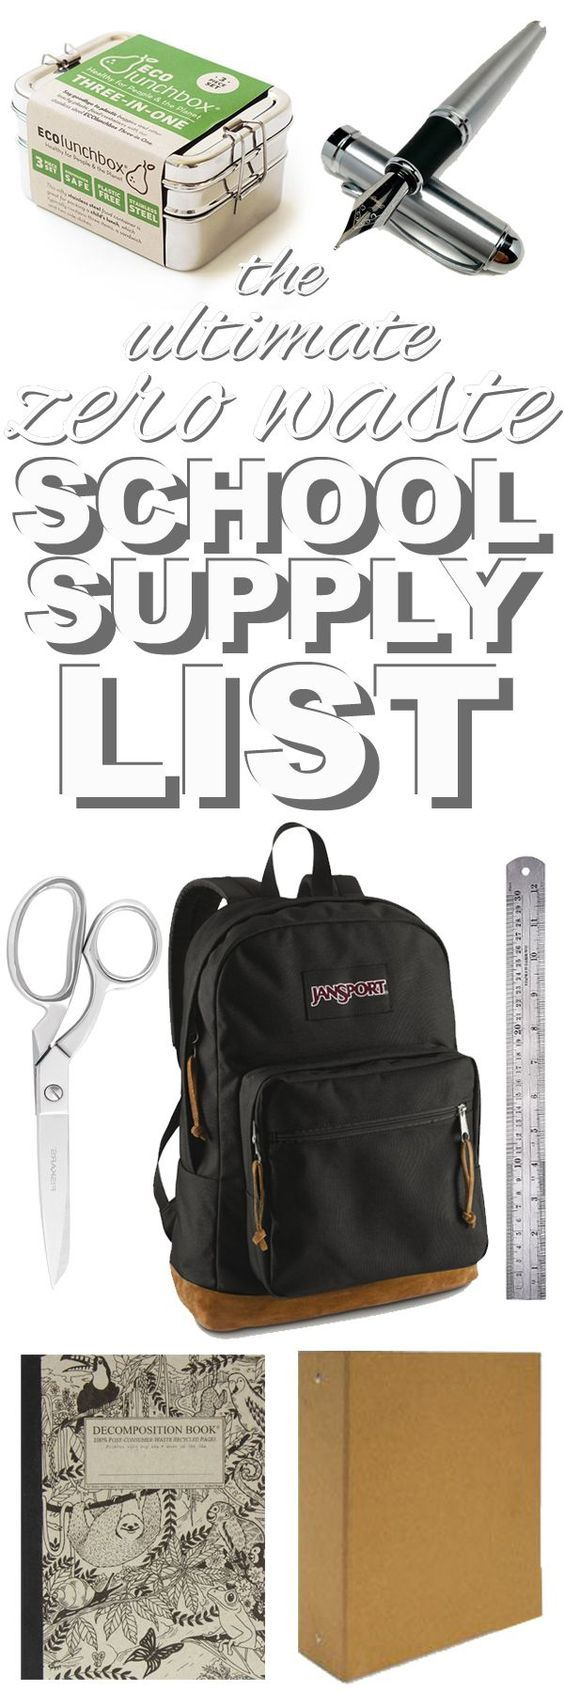 The ultimate list  of zero waste school supplies from http://www.goingzerowaste.com